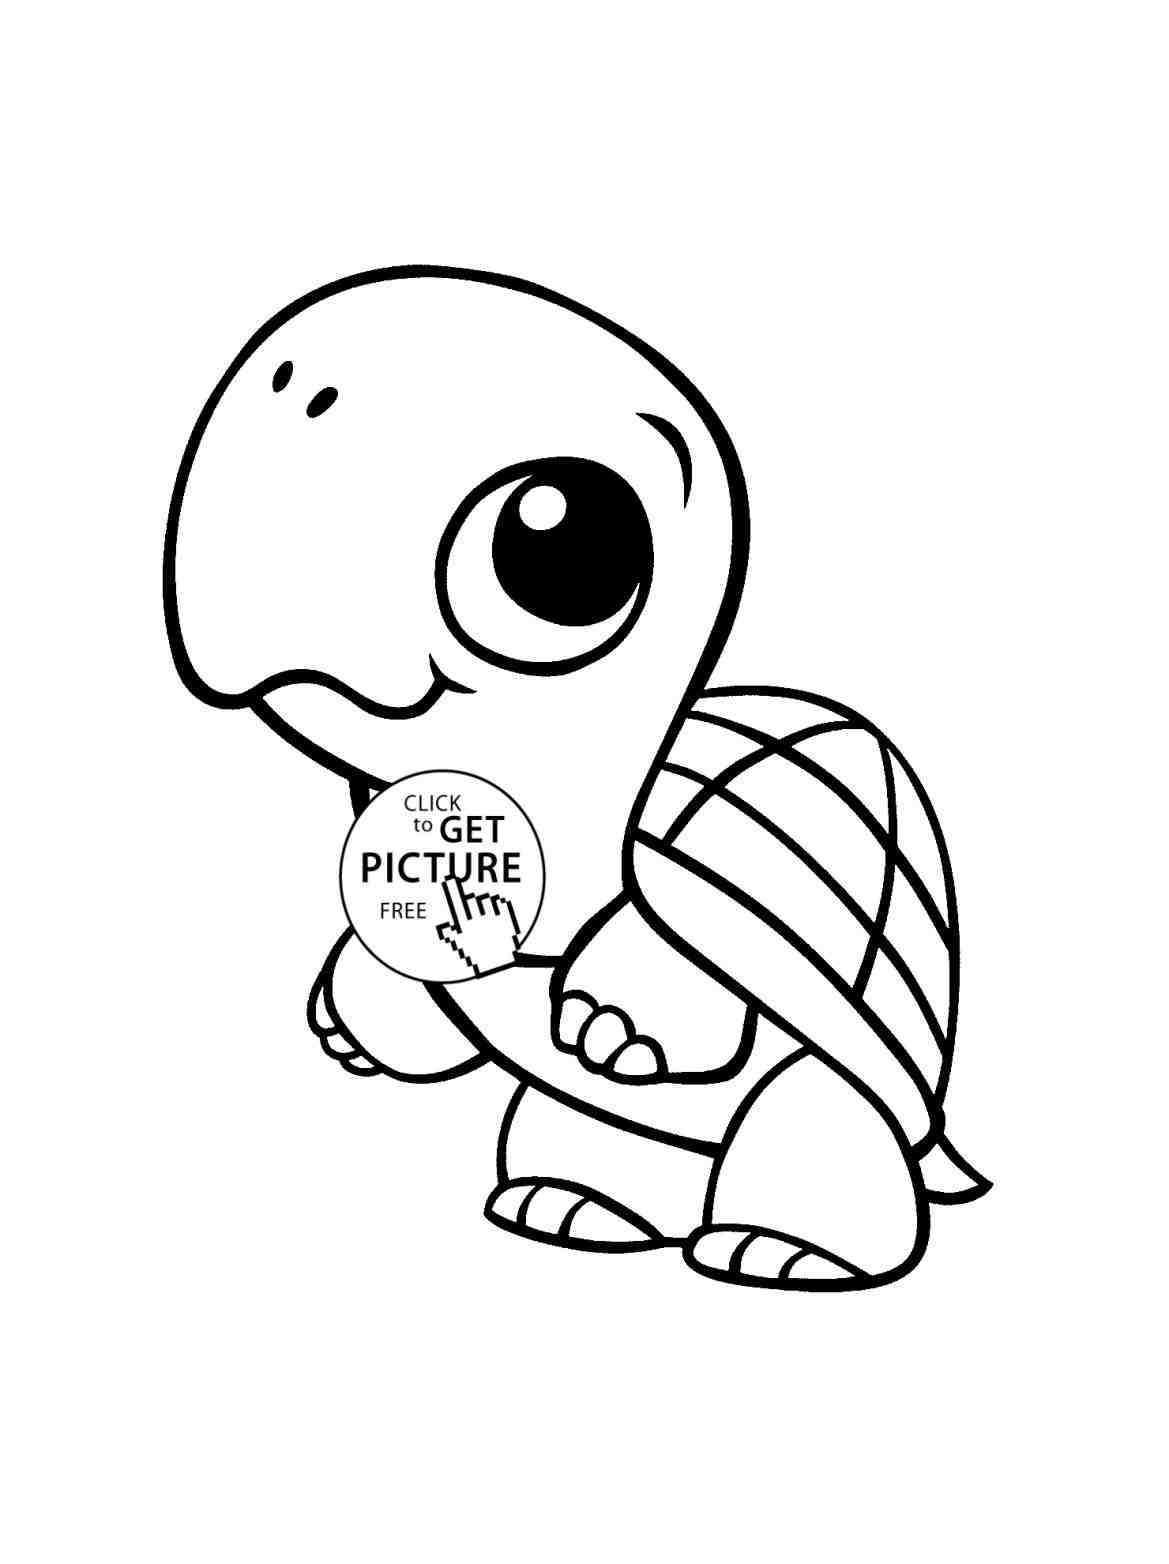 Funny Turtle Drawing At Getdrawings Com Free For Personal Use